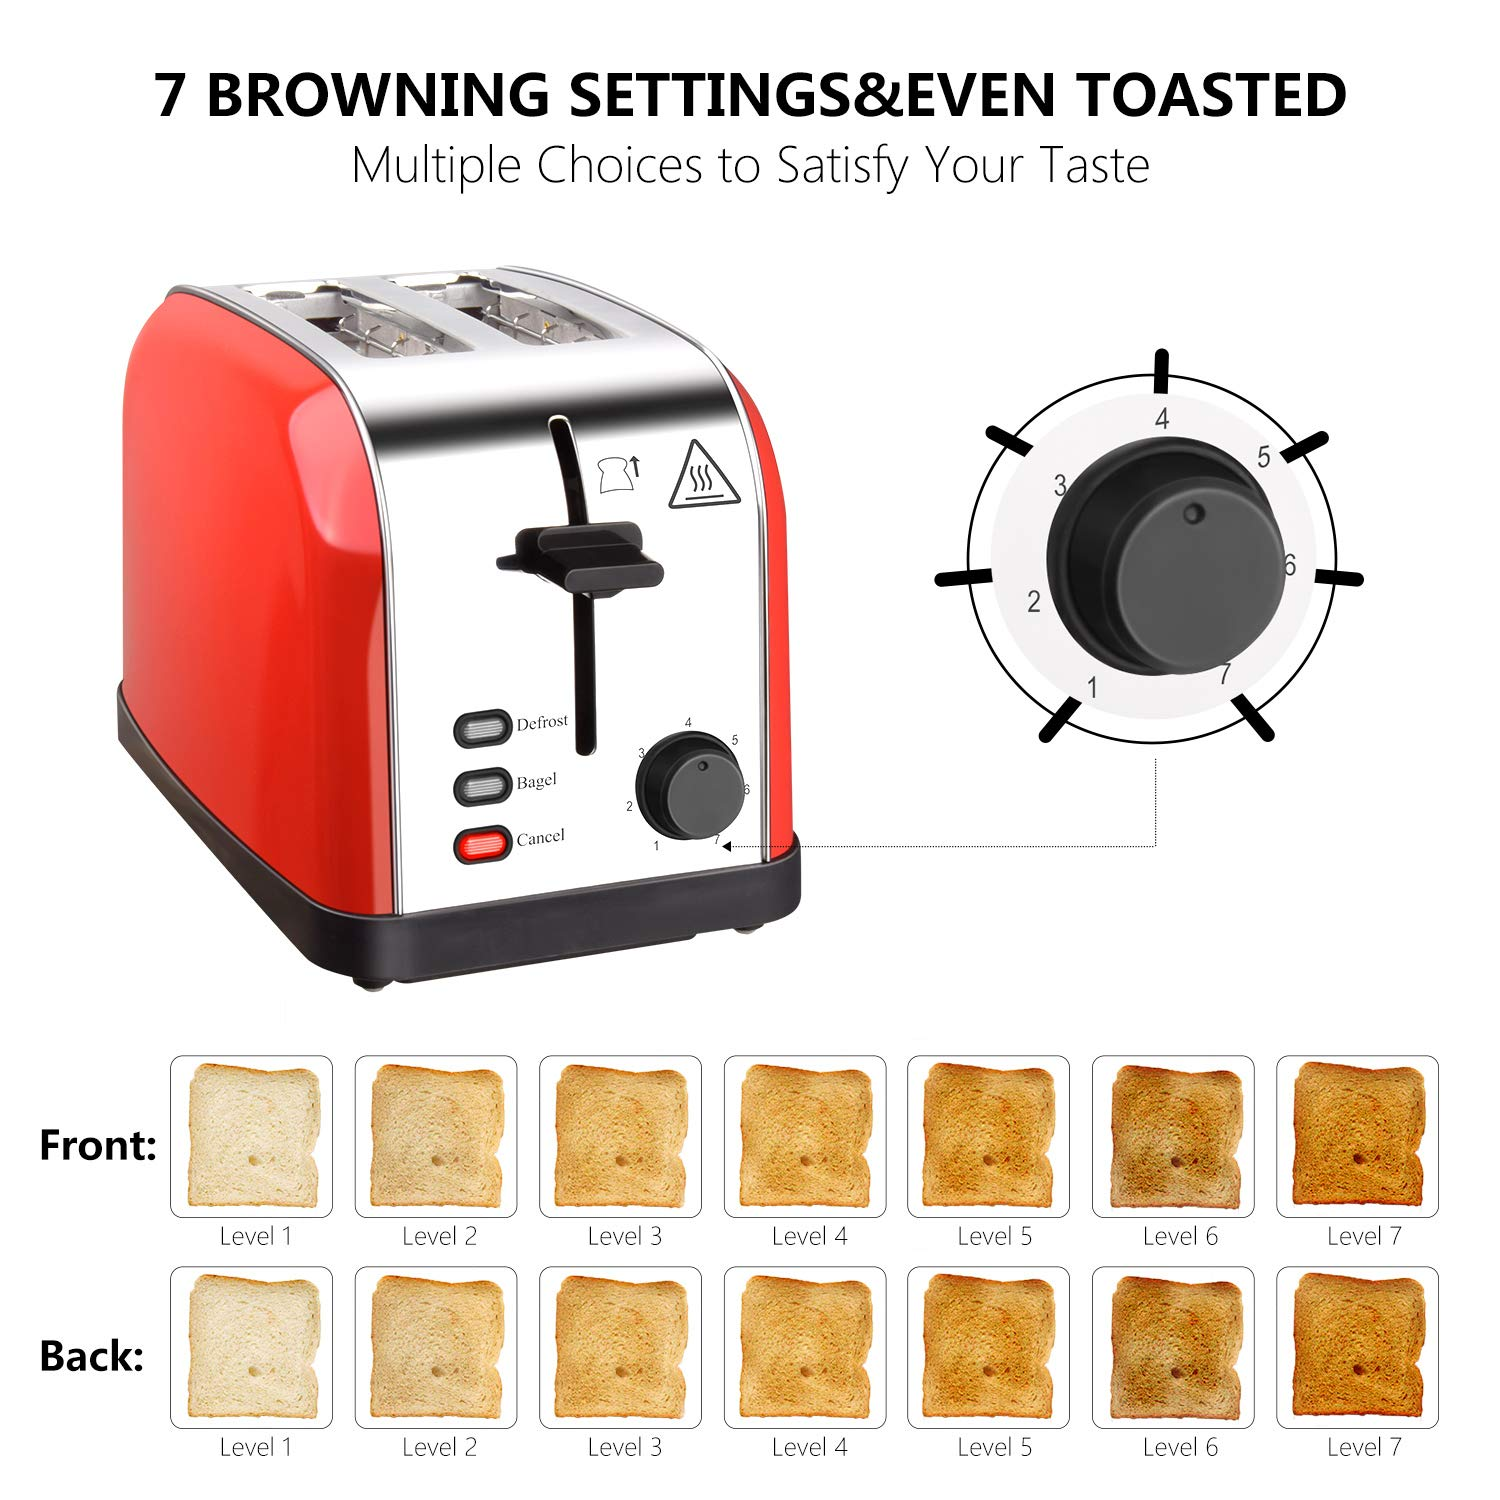 Toaster 2 Slice Toasters Best Rated Prime Extra Wide Slots Compact Stainless Steel with Defrost Reheat Cancel Button High Lift Lever Toaster's Removable Crumb Tray Quickly Toast for Bread&Bagel by Evening (Image #3)